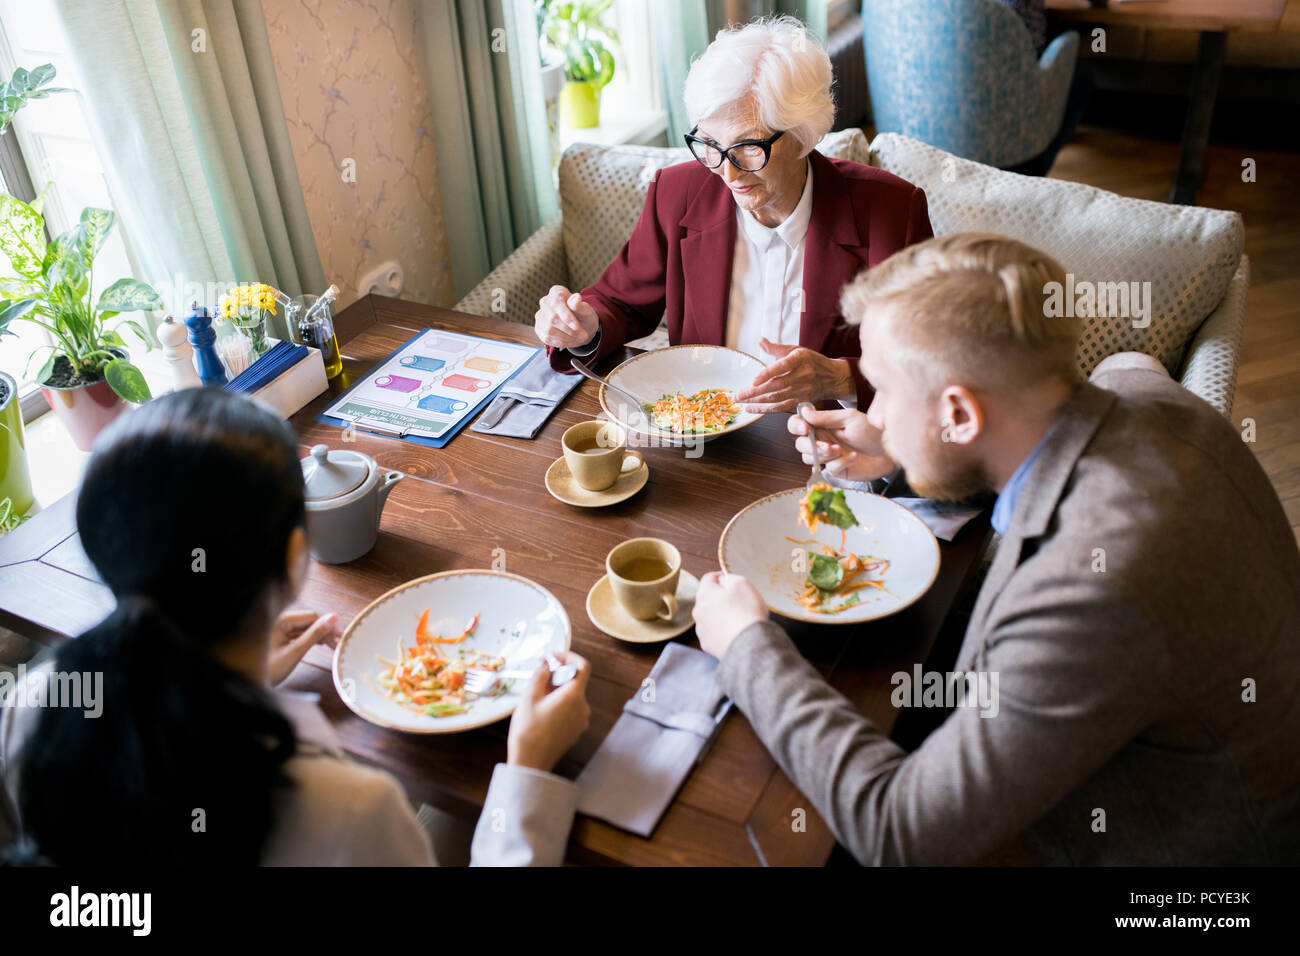 Business meeting at the restaurant - Stock Image